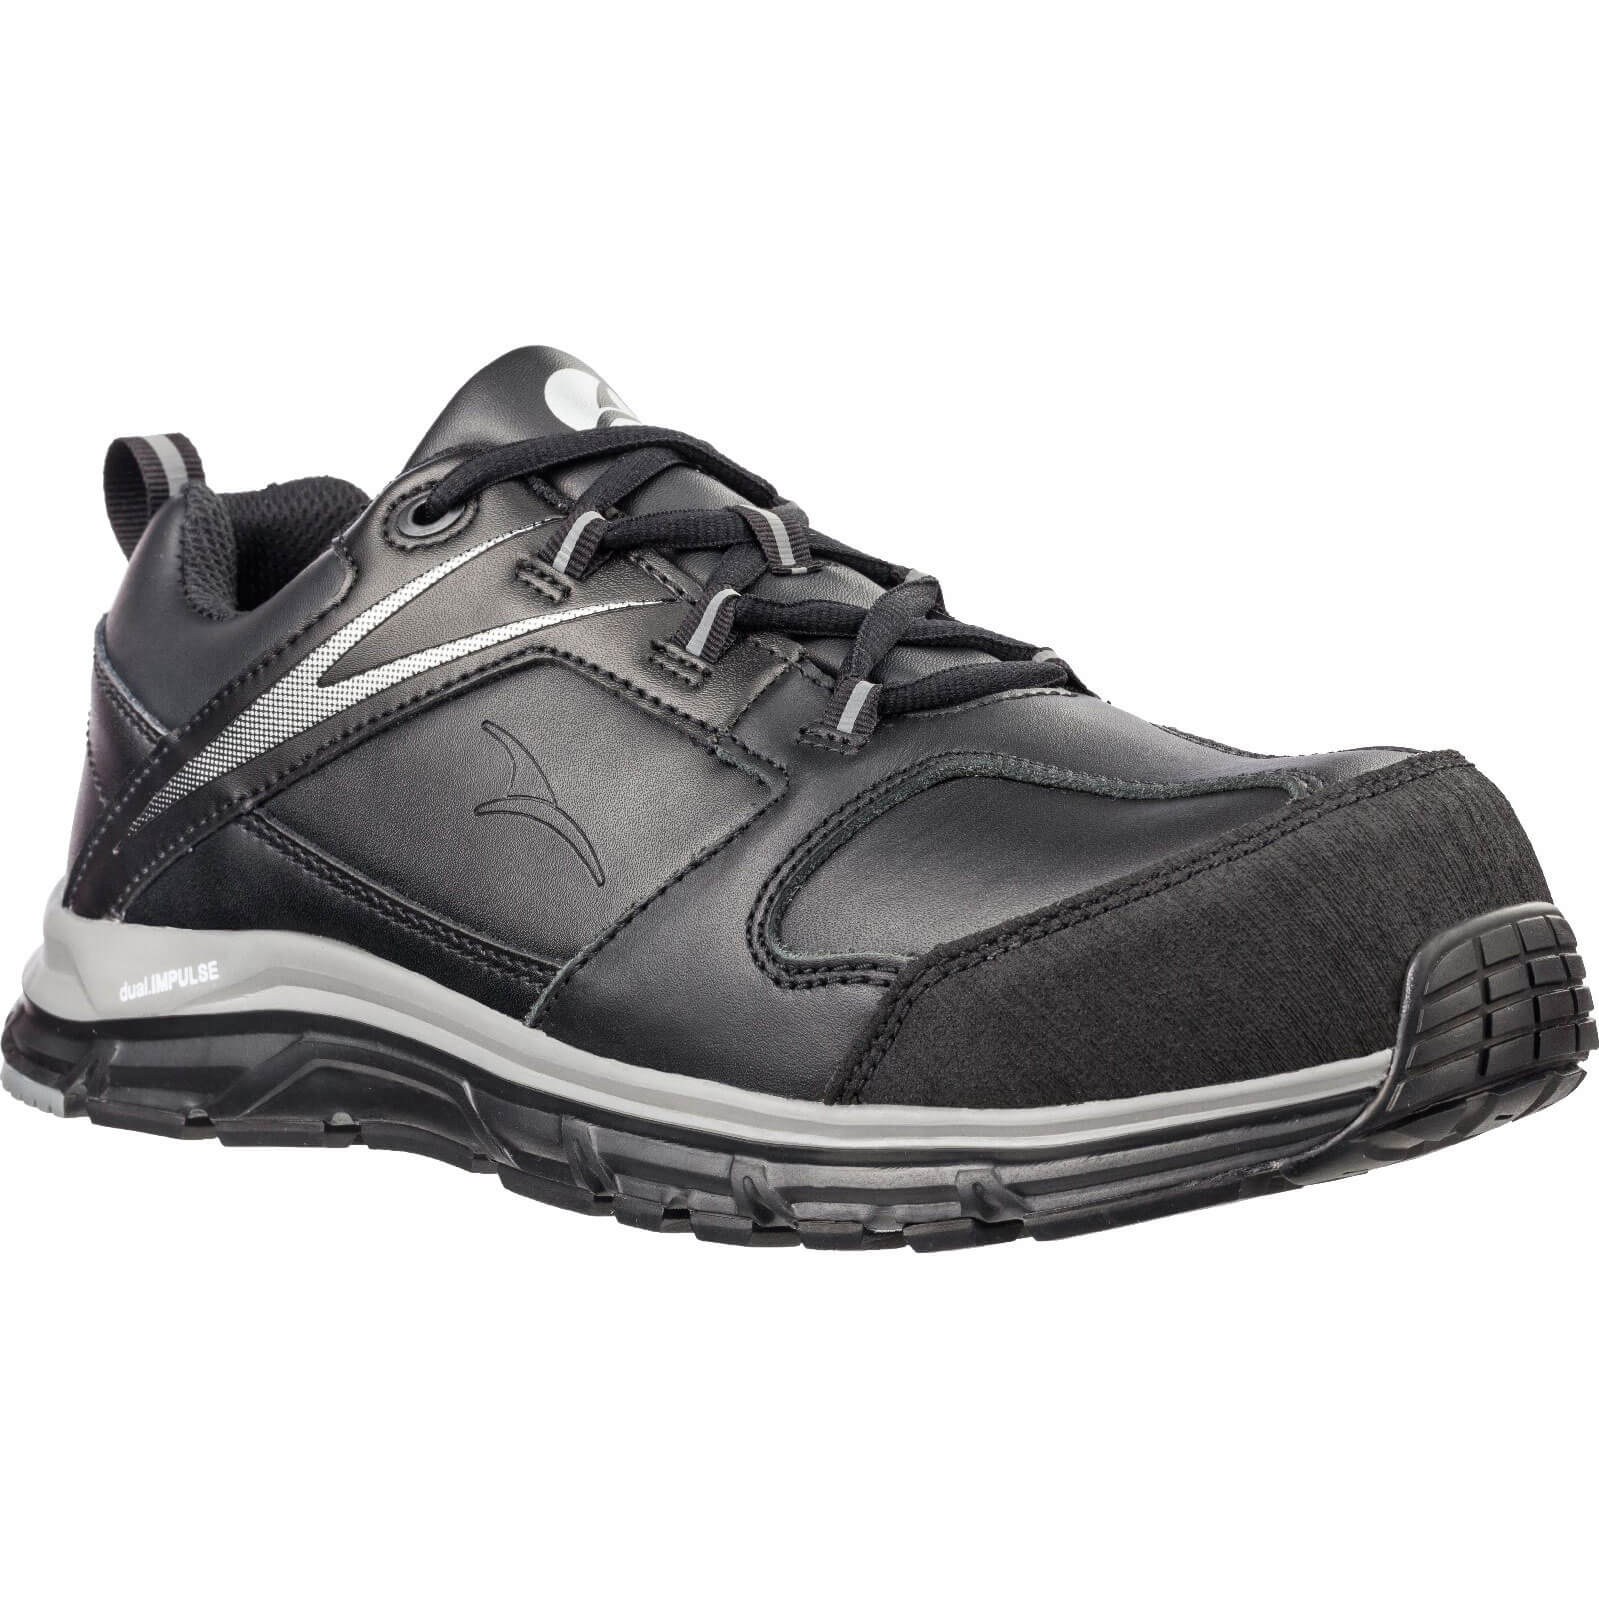 Image of Albatros Vigor Impulse Low Safety Trainer Black Size 10